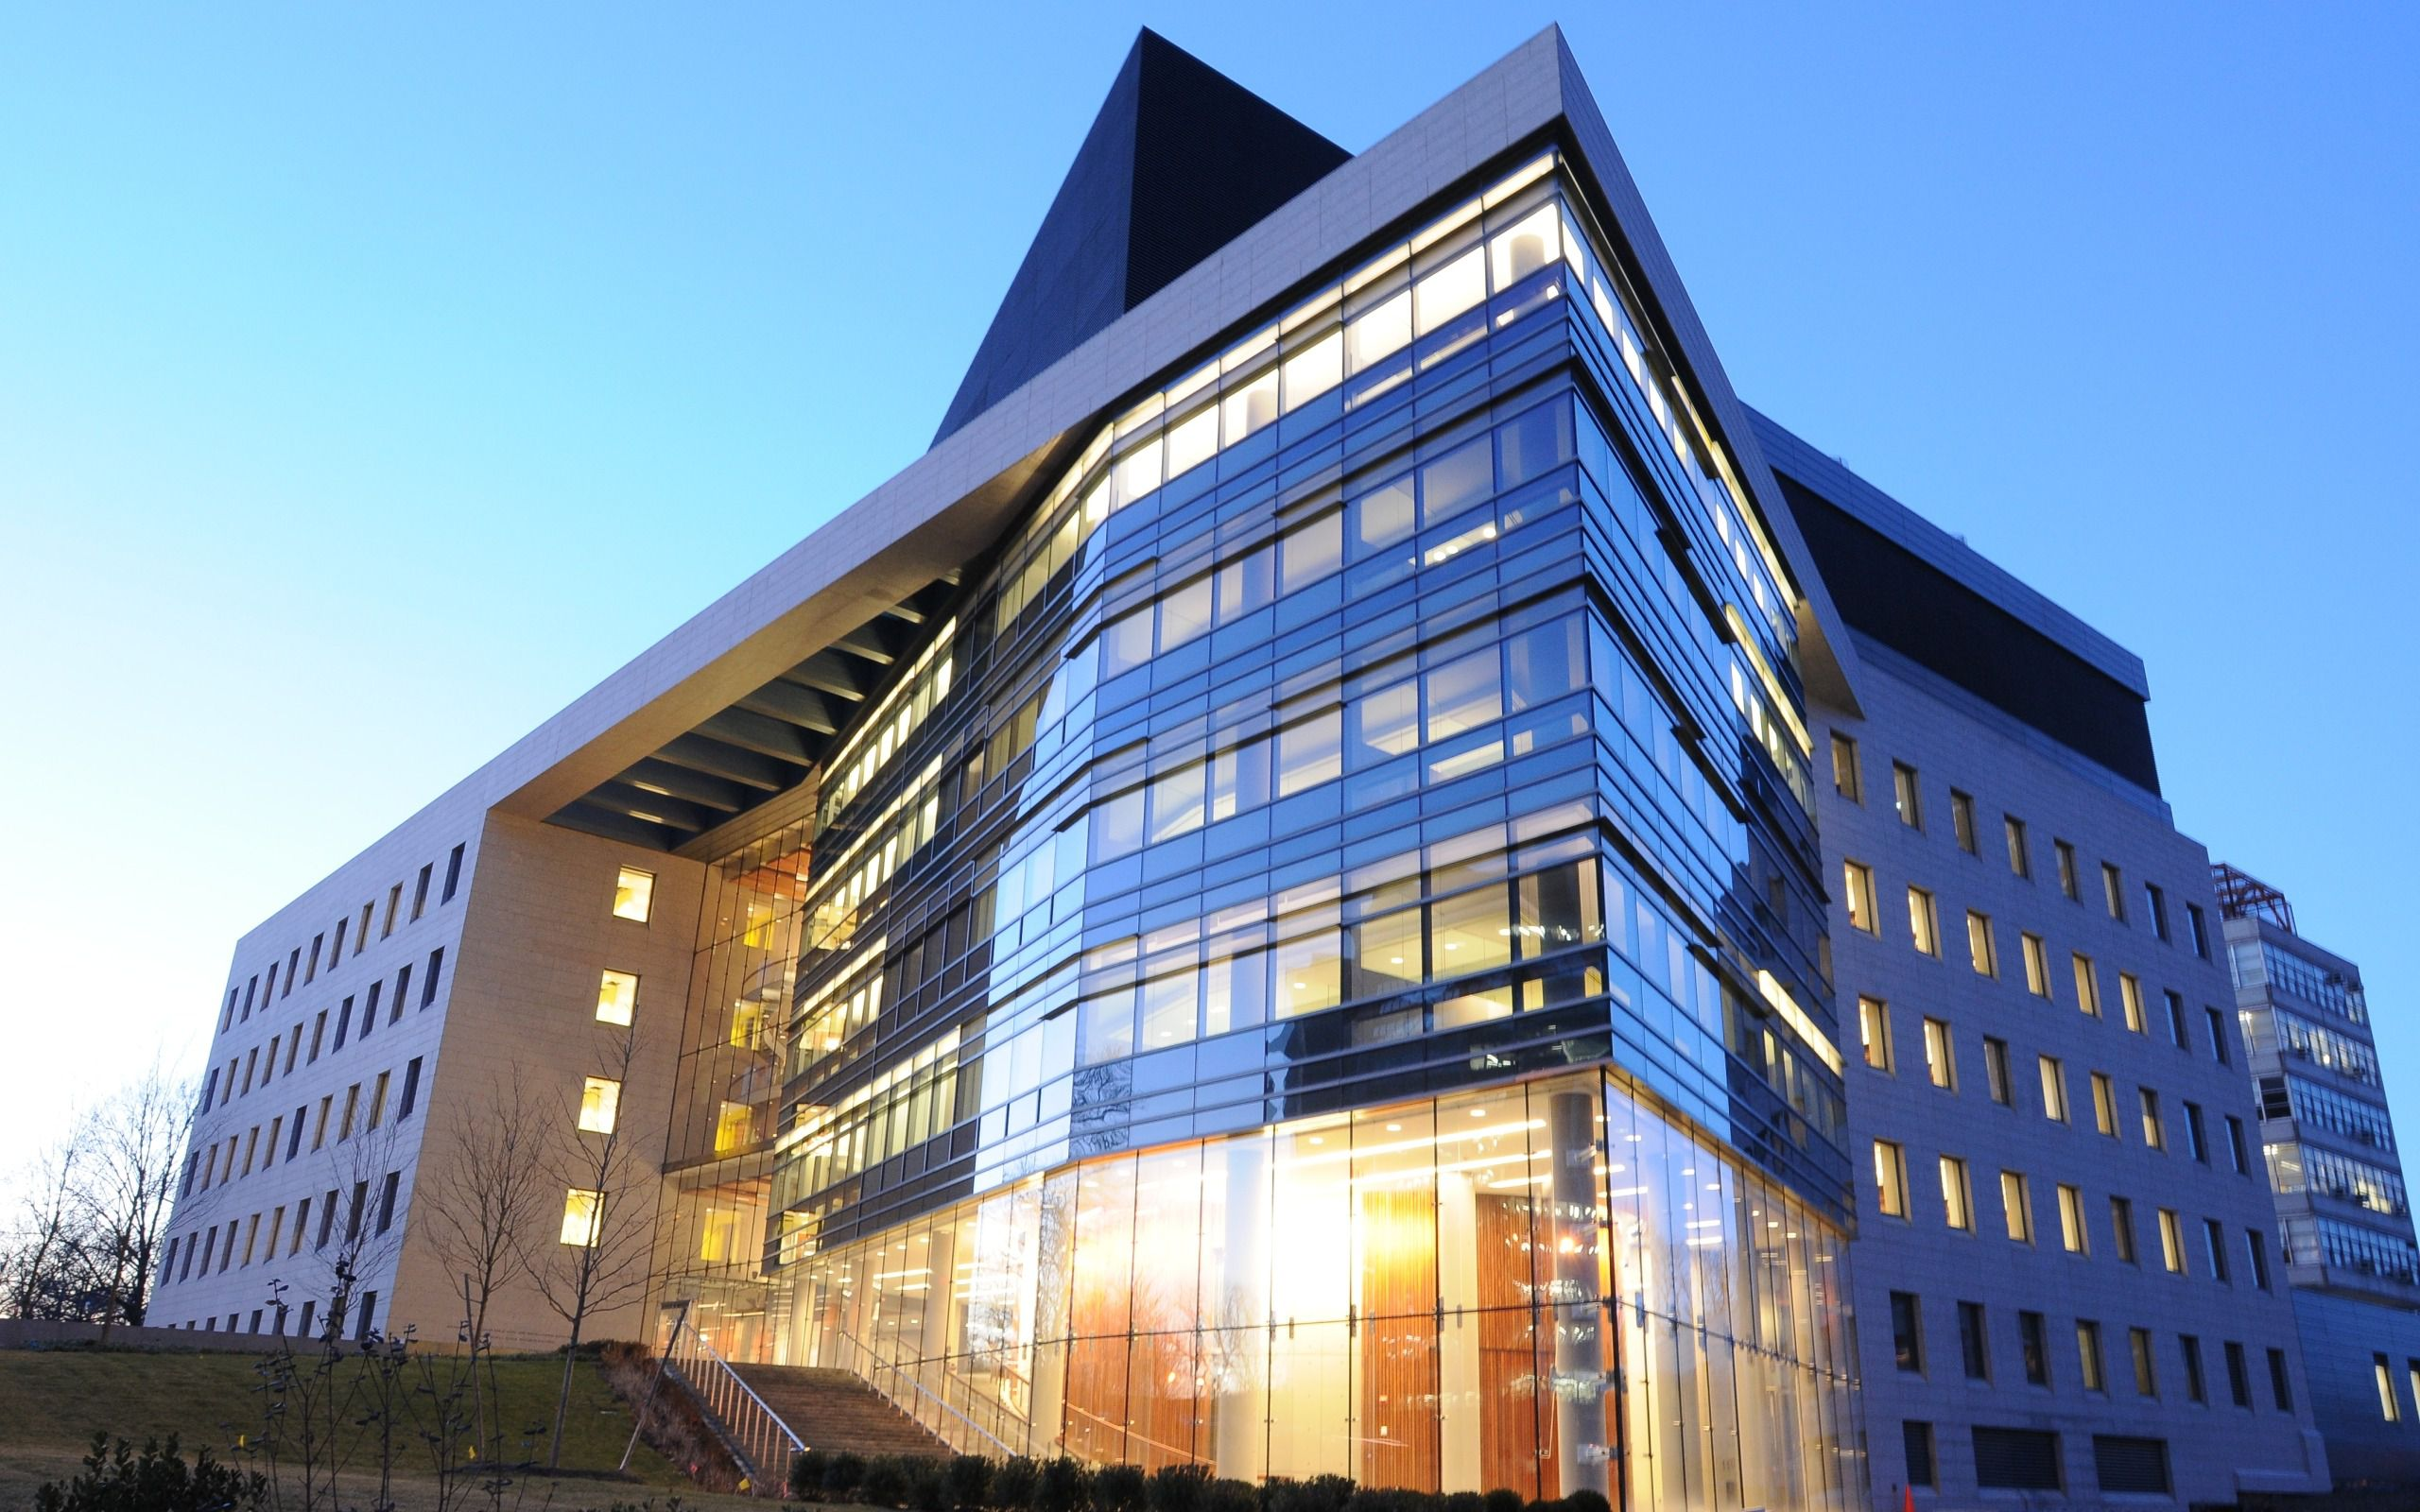 The Price Center/Block Pavilion is one of six buildings on Einstein's campus that has tested positive for Legionnaires' disease.